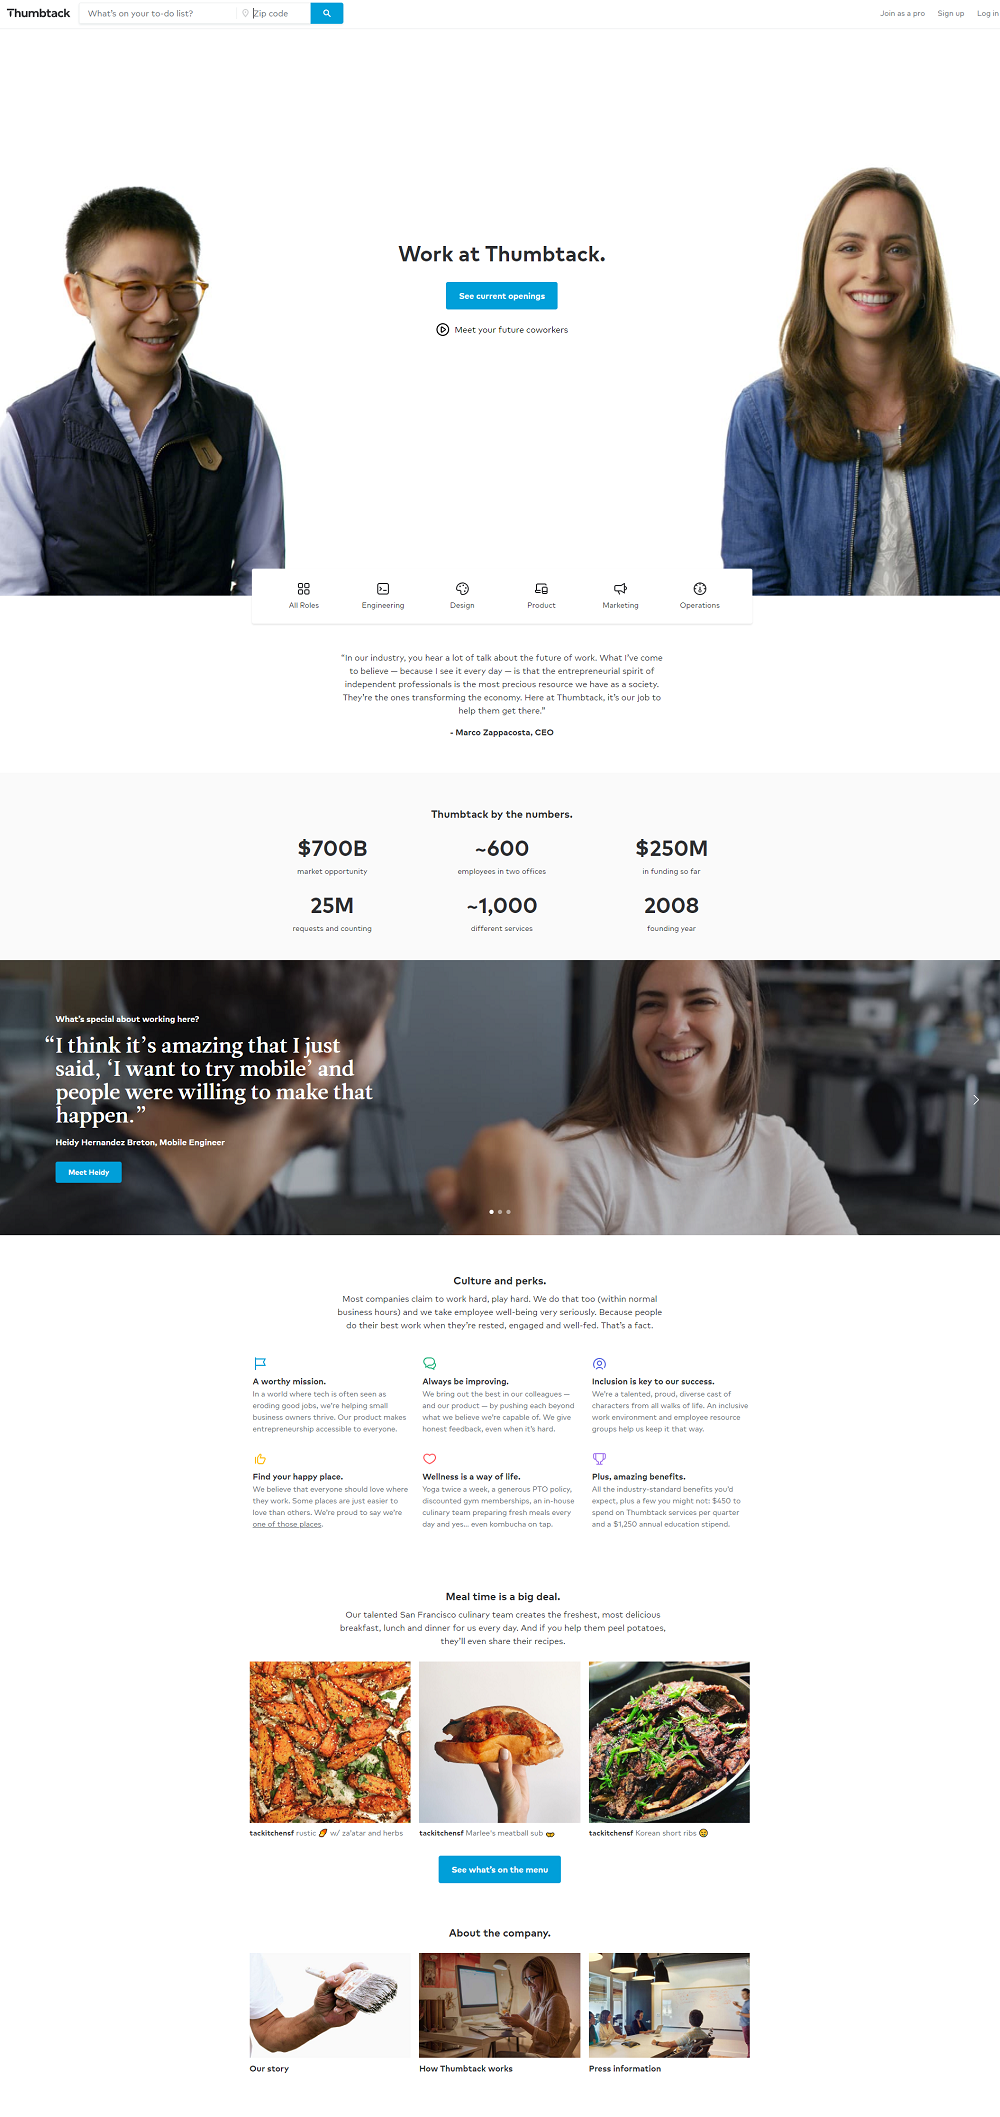 Thumbtack Career Page